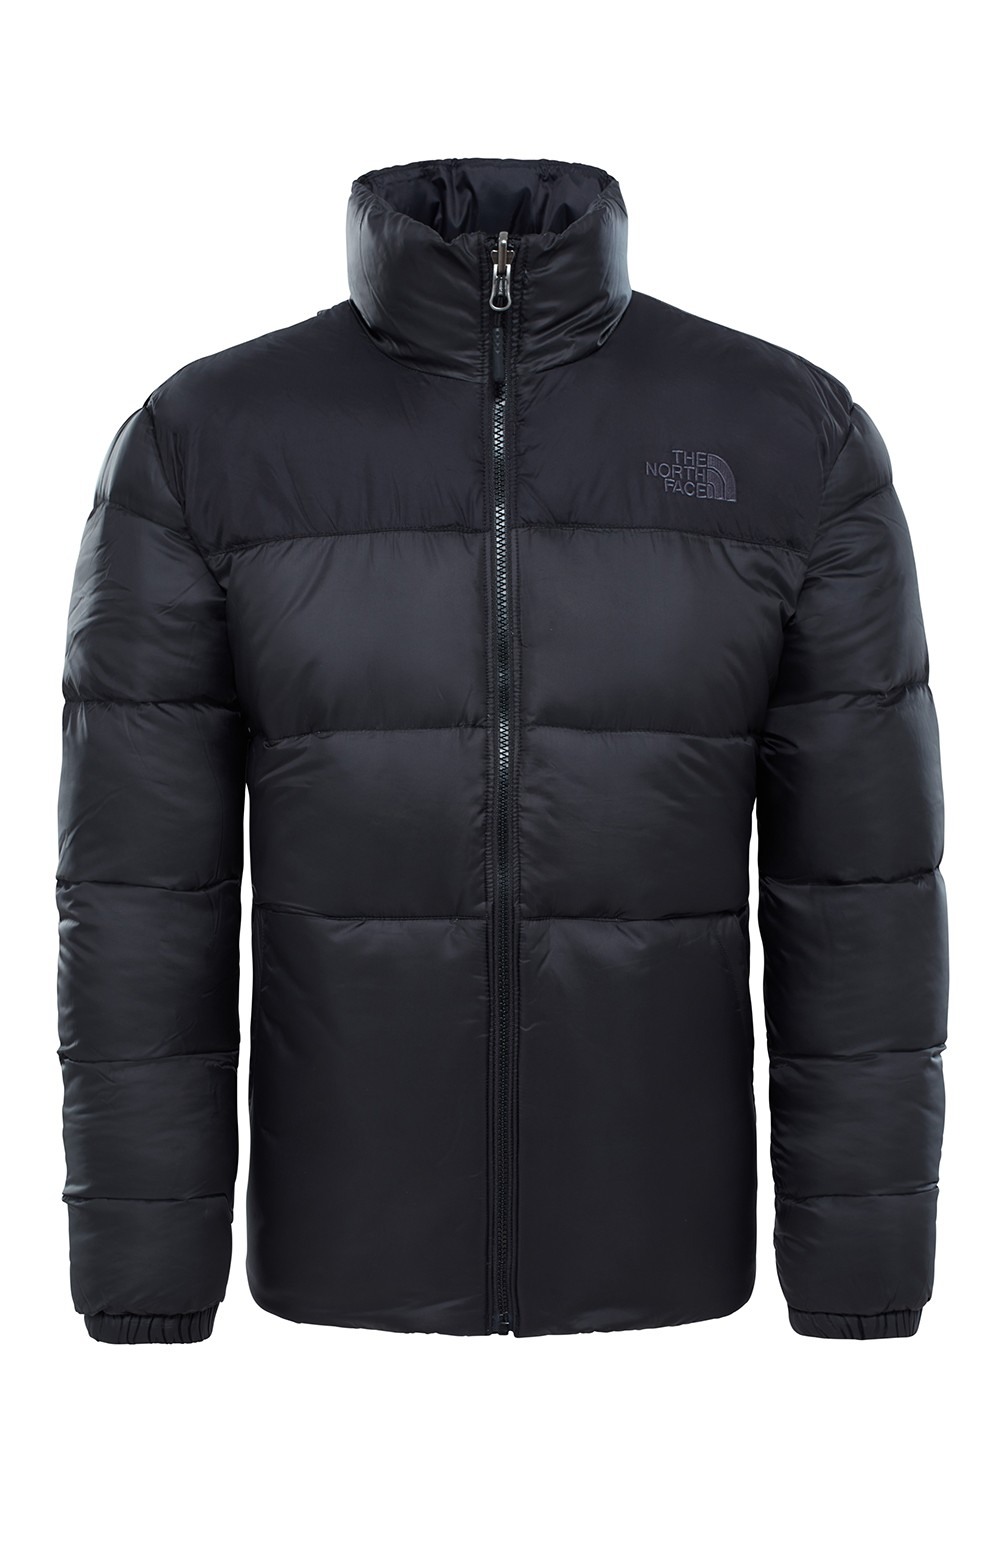 fedbbb53125a The North Face Mens Nuptse III Down Jacket - House of Bruar